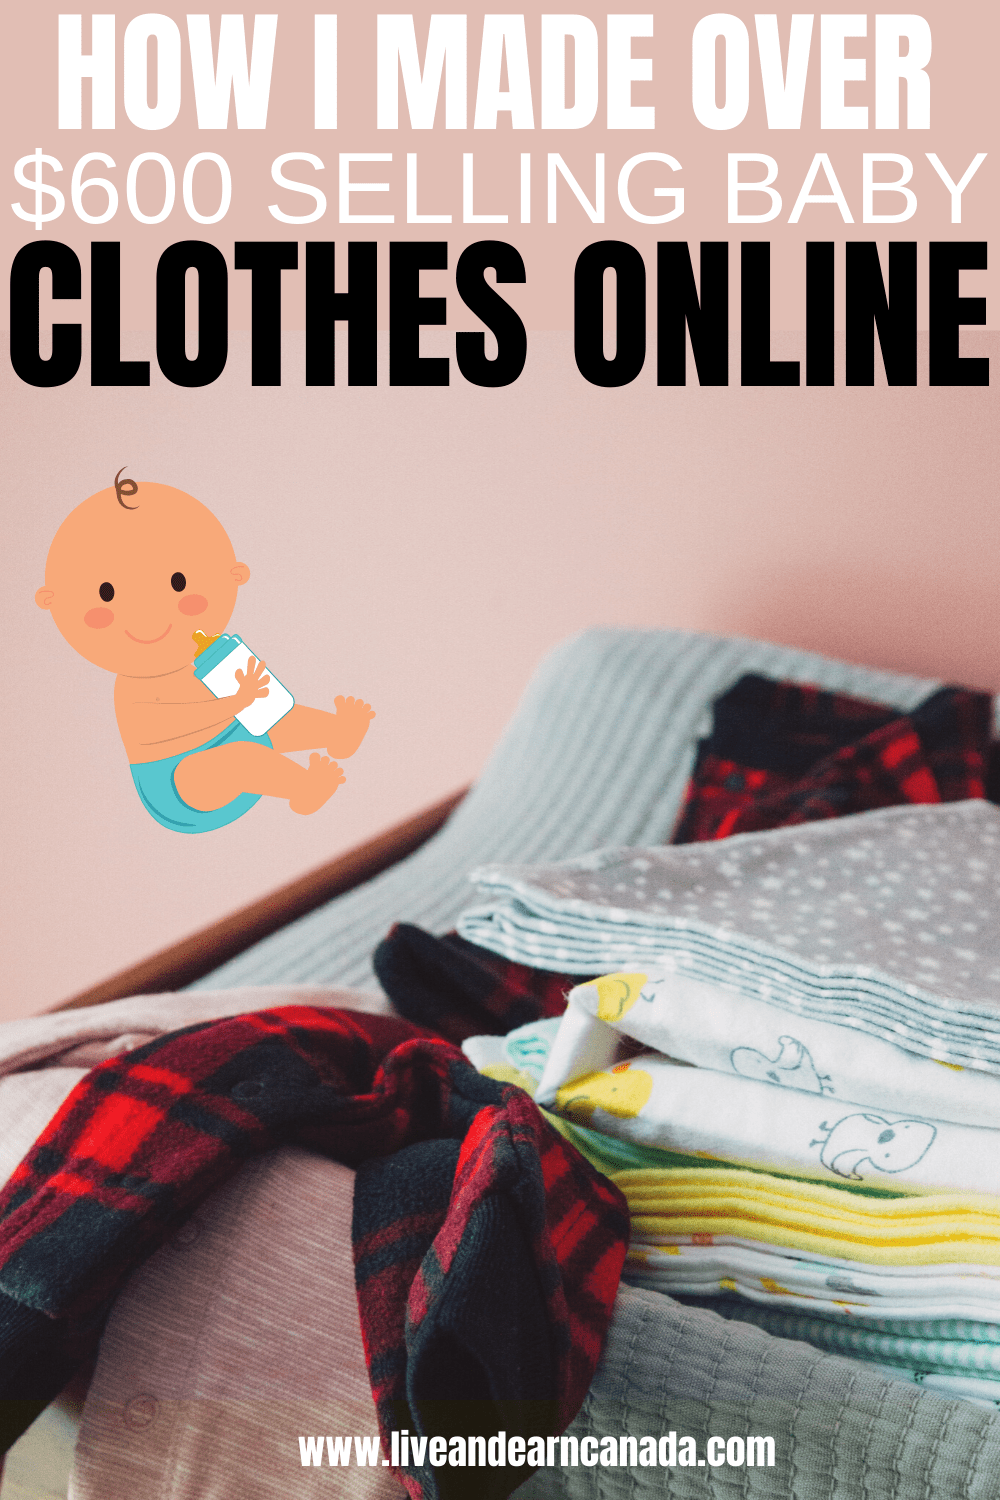 Here are our tips for selling clothes online for cash. Use our ideas for selling clothes online to make money from home. We also listed tips for selling clothes online in Canada. This is the ultimate guide for finding the best places to sell your old clothes online for money. #makemoneyonline #makemoneyfromhome #sidehustle #makemoney #frugal #makemoneyfast start selling new, used, recycled, vintage or high end clothes online.